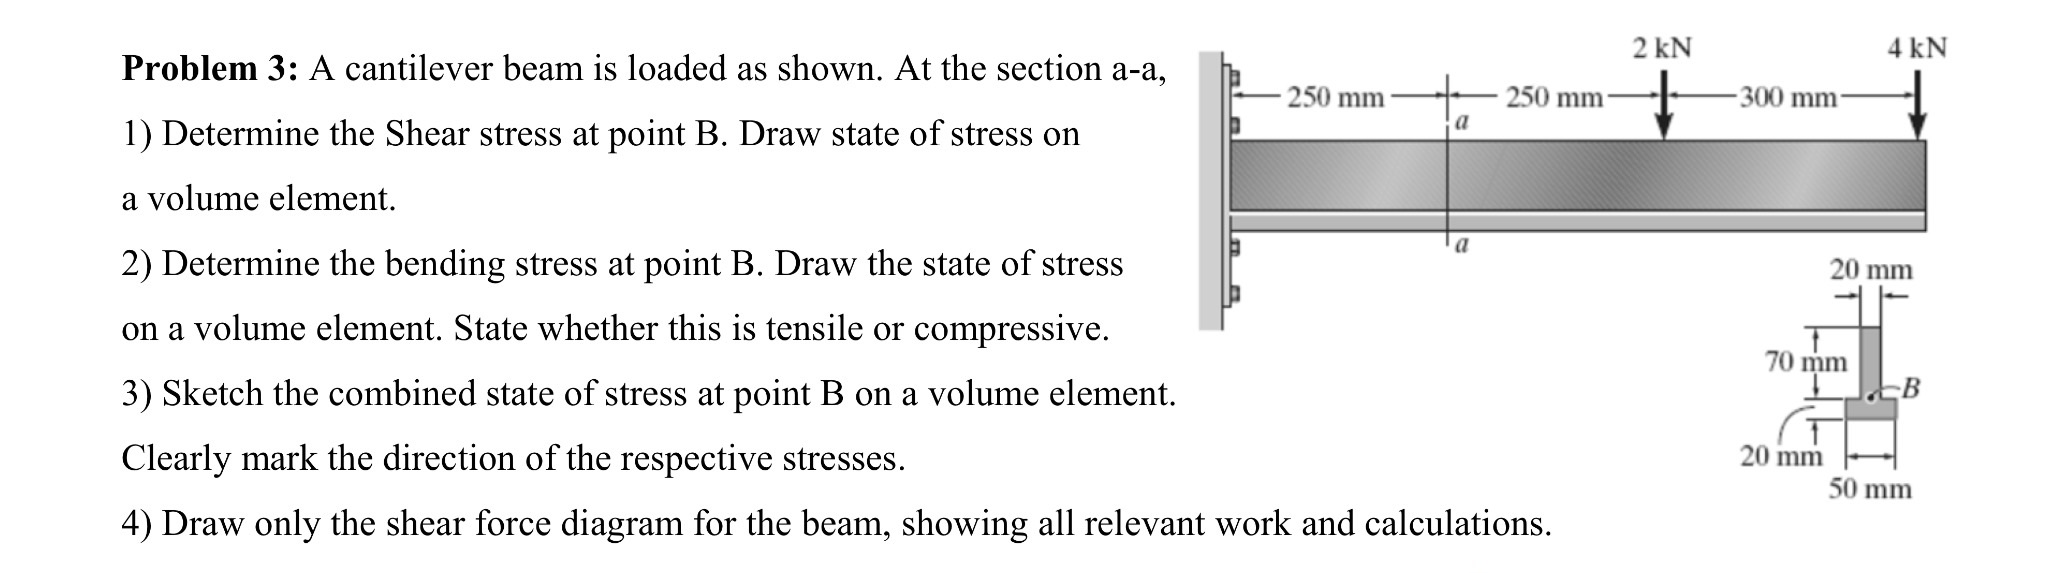 Problem 3 A Cantilever Beam Is Loaded As Shown Shear Force Diagram